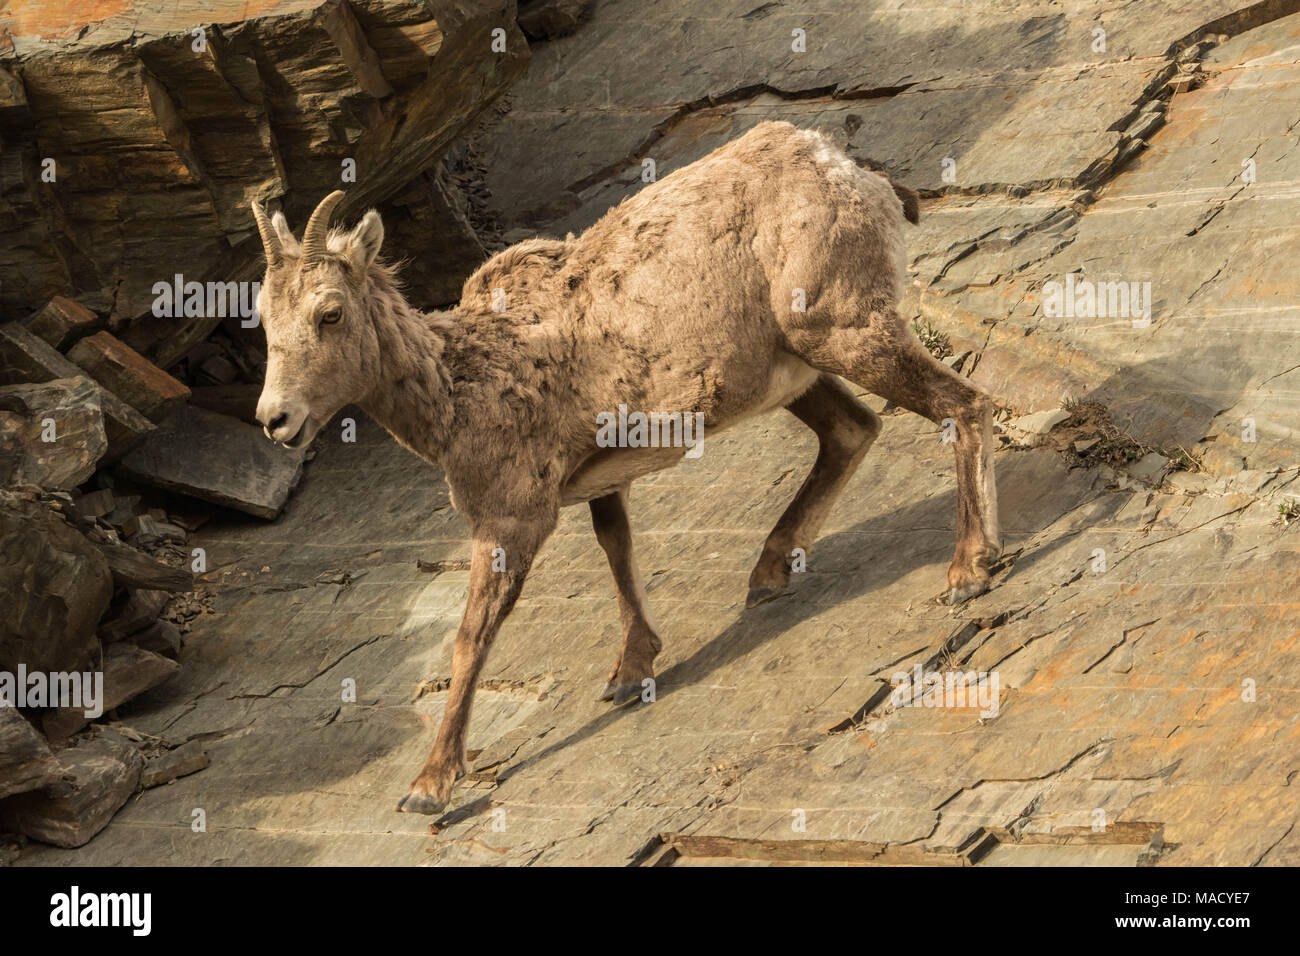 A Rocky Mountain Bighorn Ewe Heads Down a Cliff - Stock Image